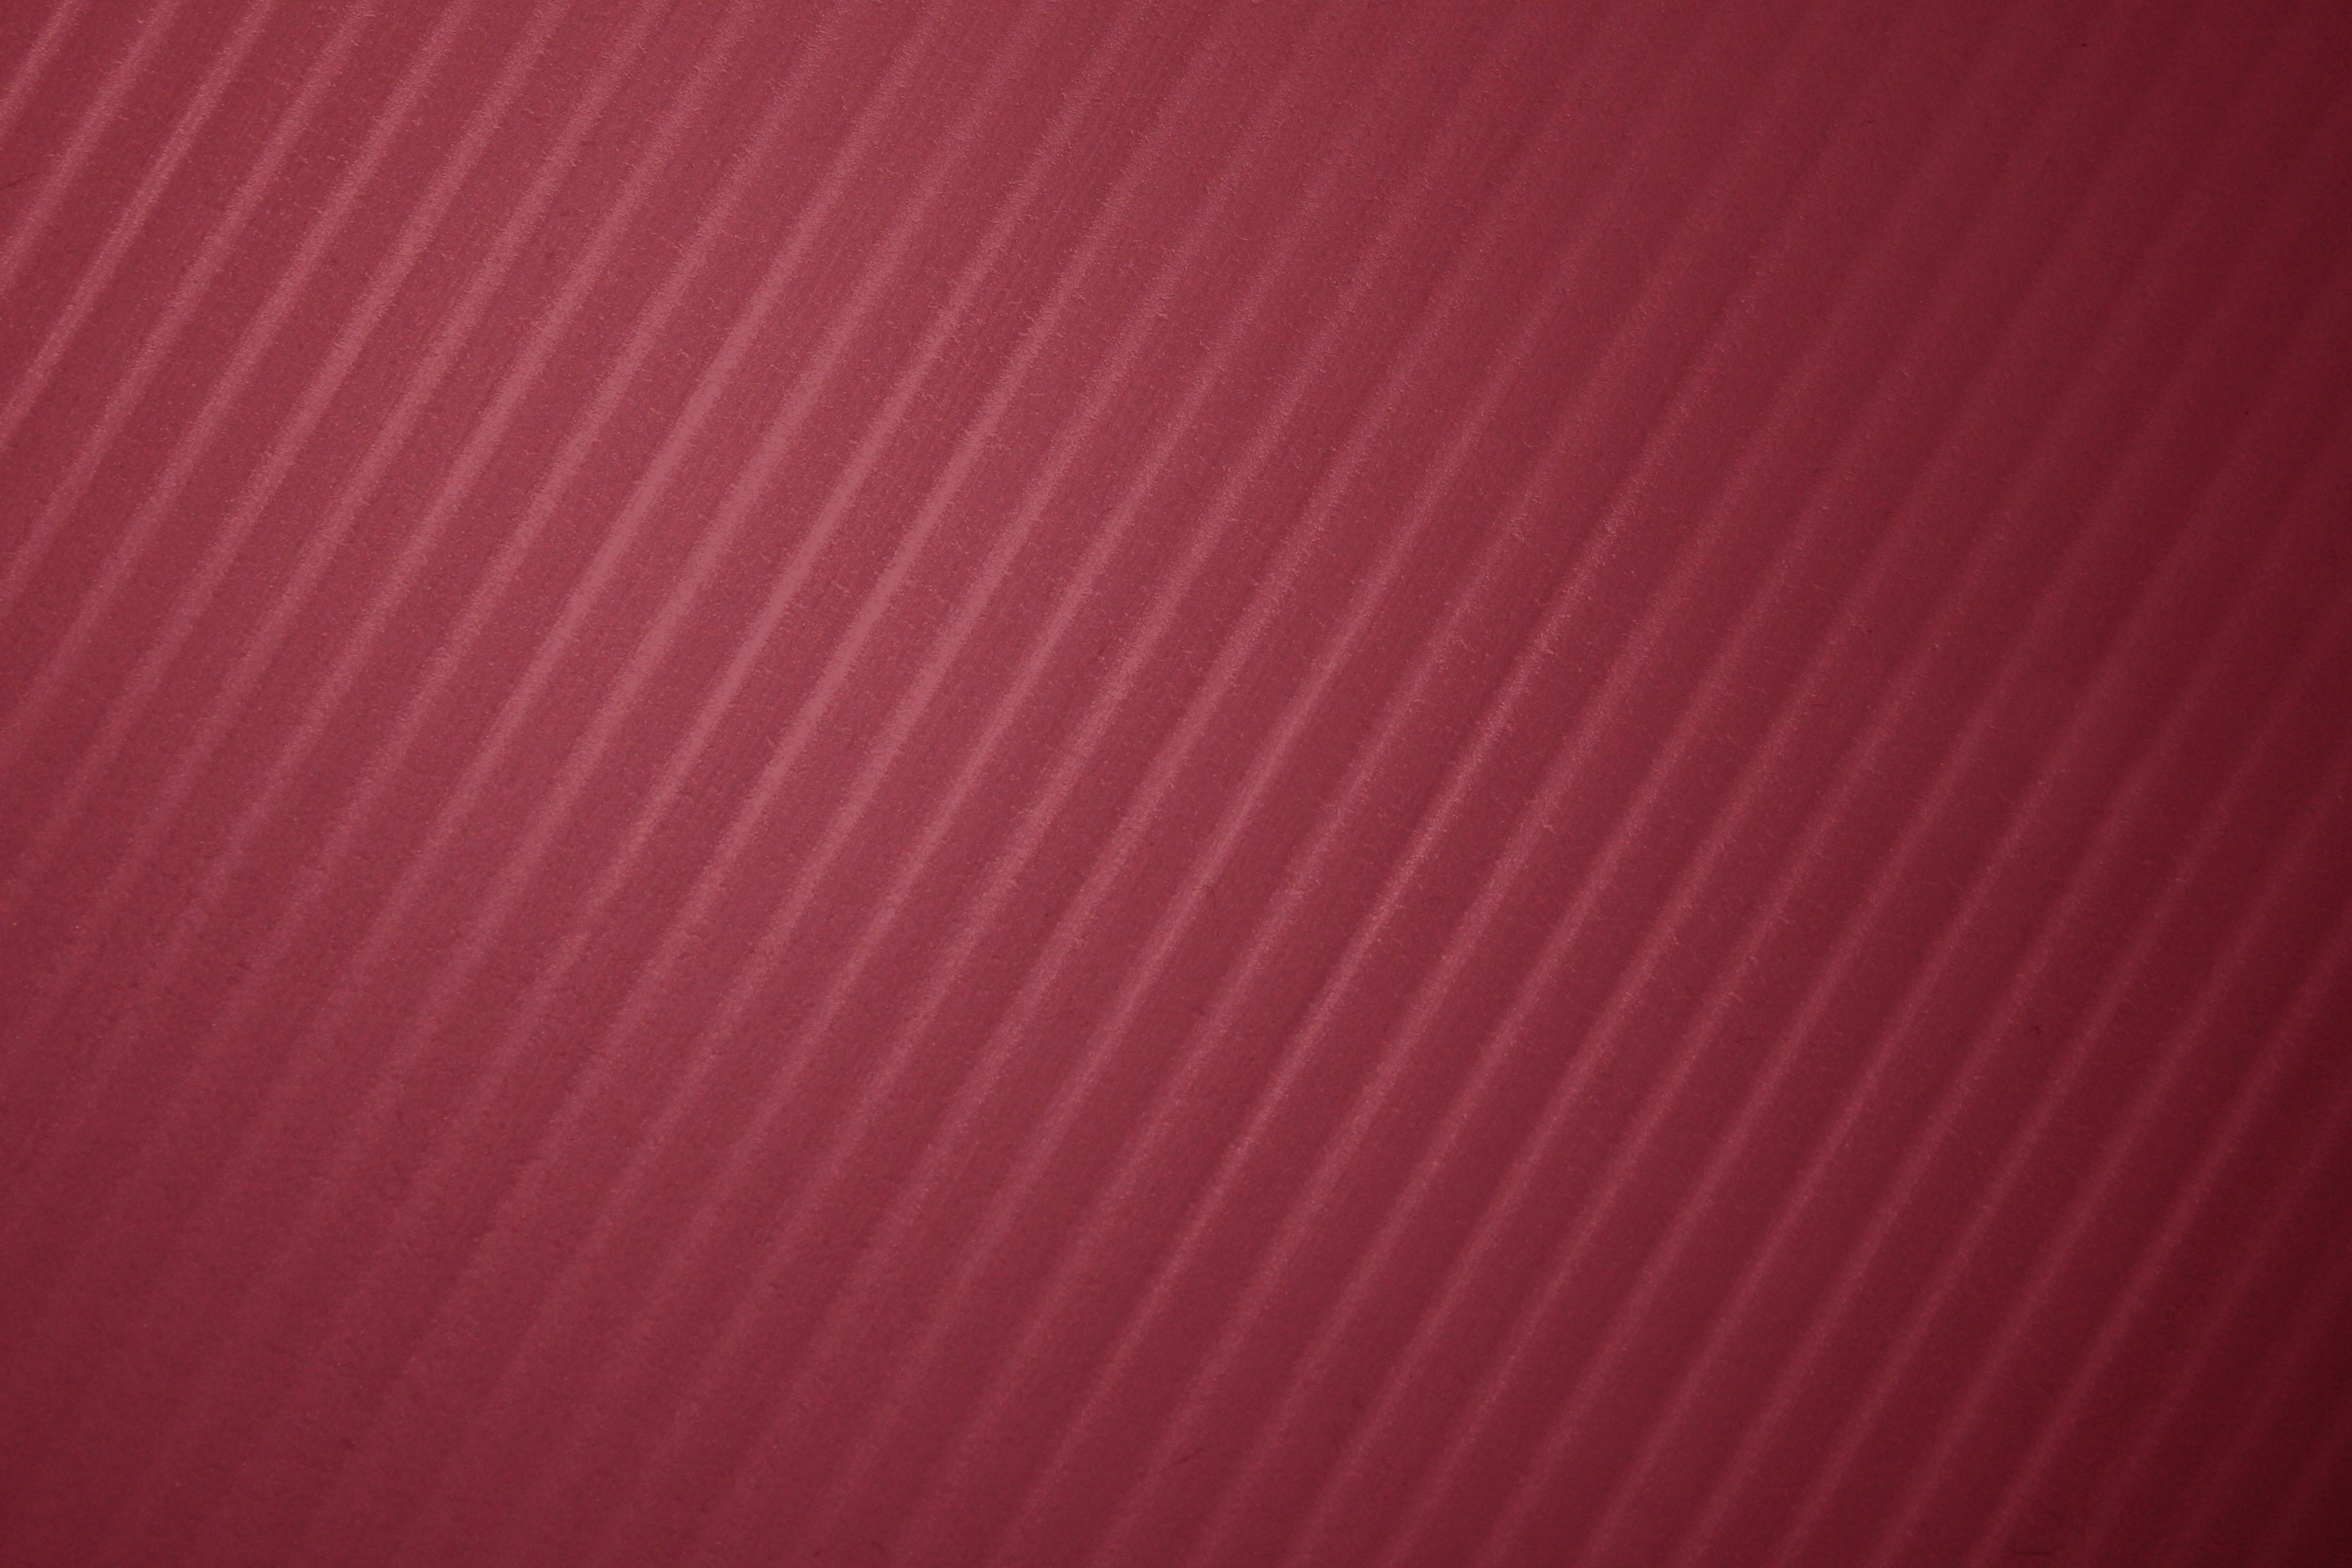 Maroon Textured Wallpaper Maroon Diagonal Striped